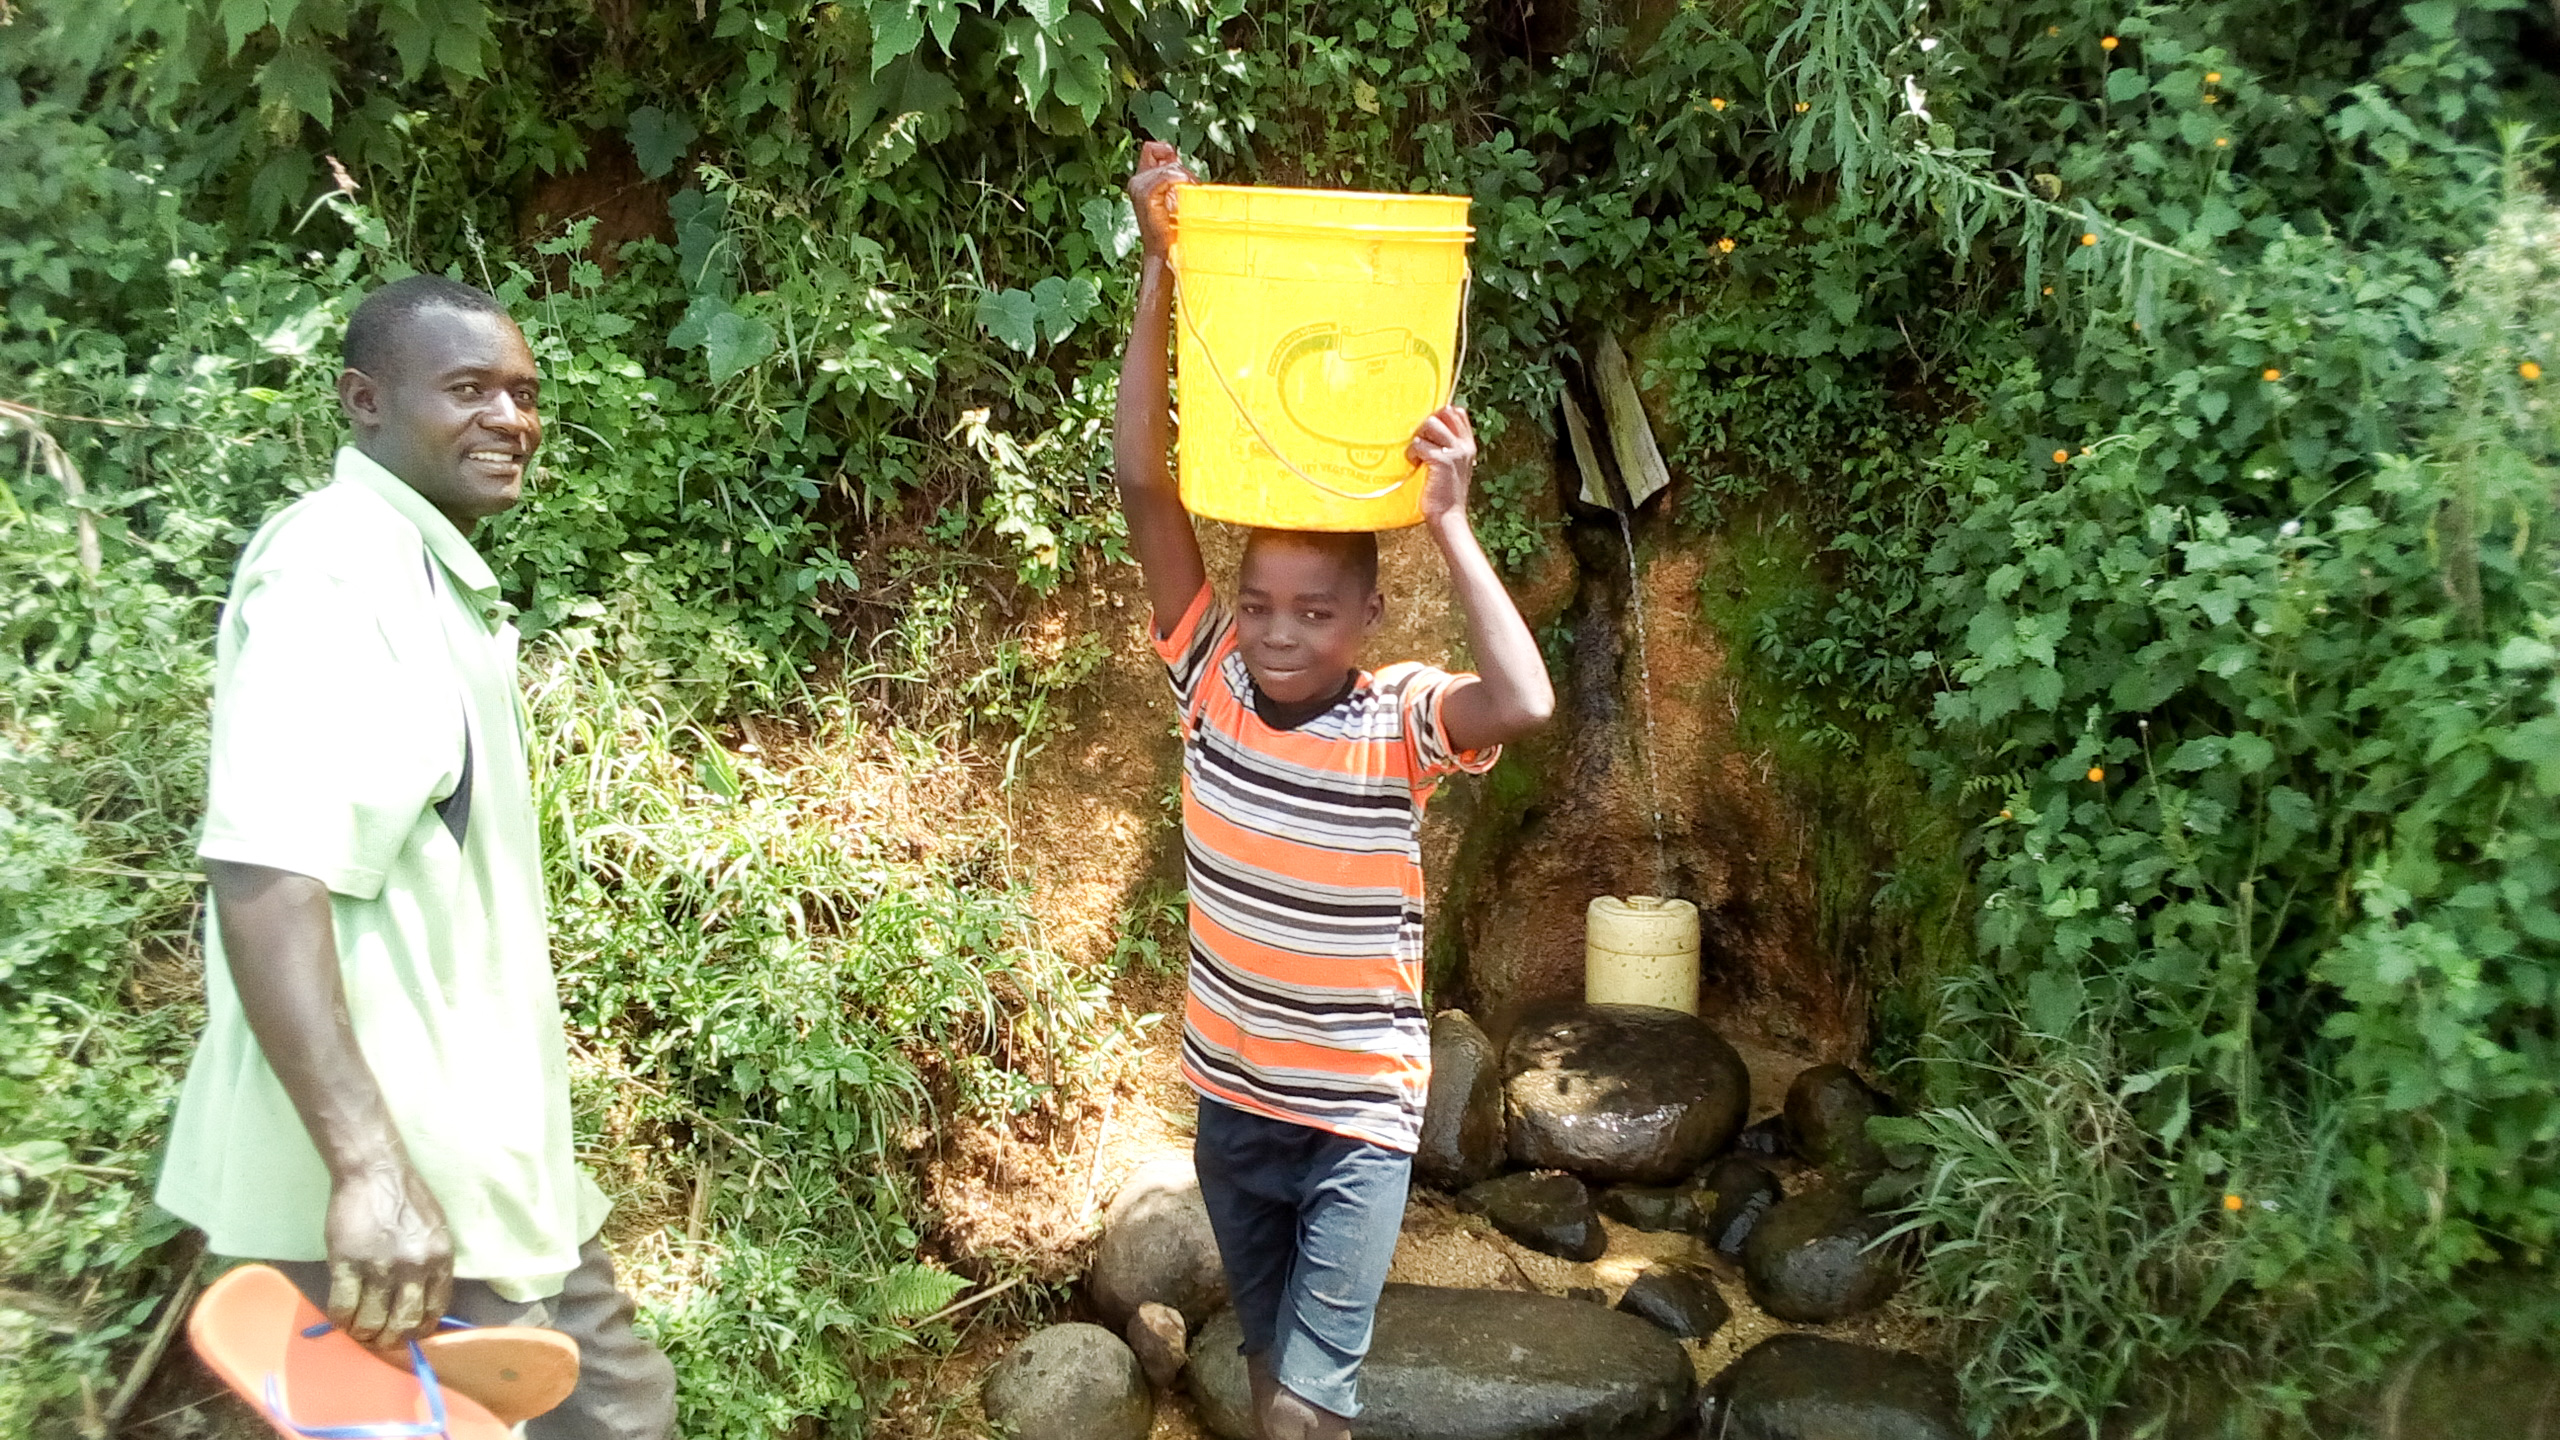 The Water Project : 13-kenya19104-boy-fetching-water-at-the-spring